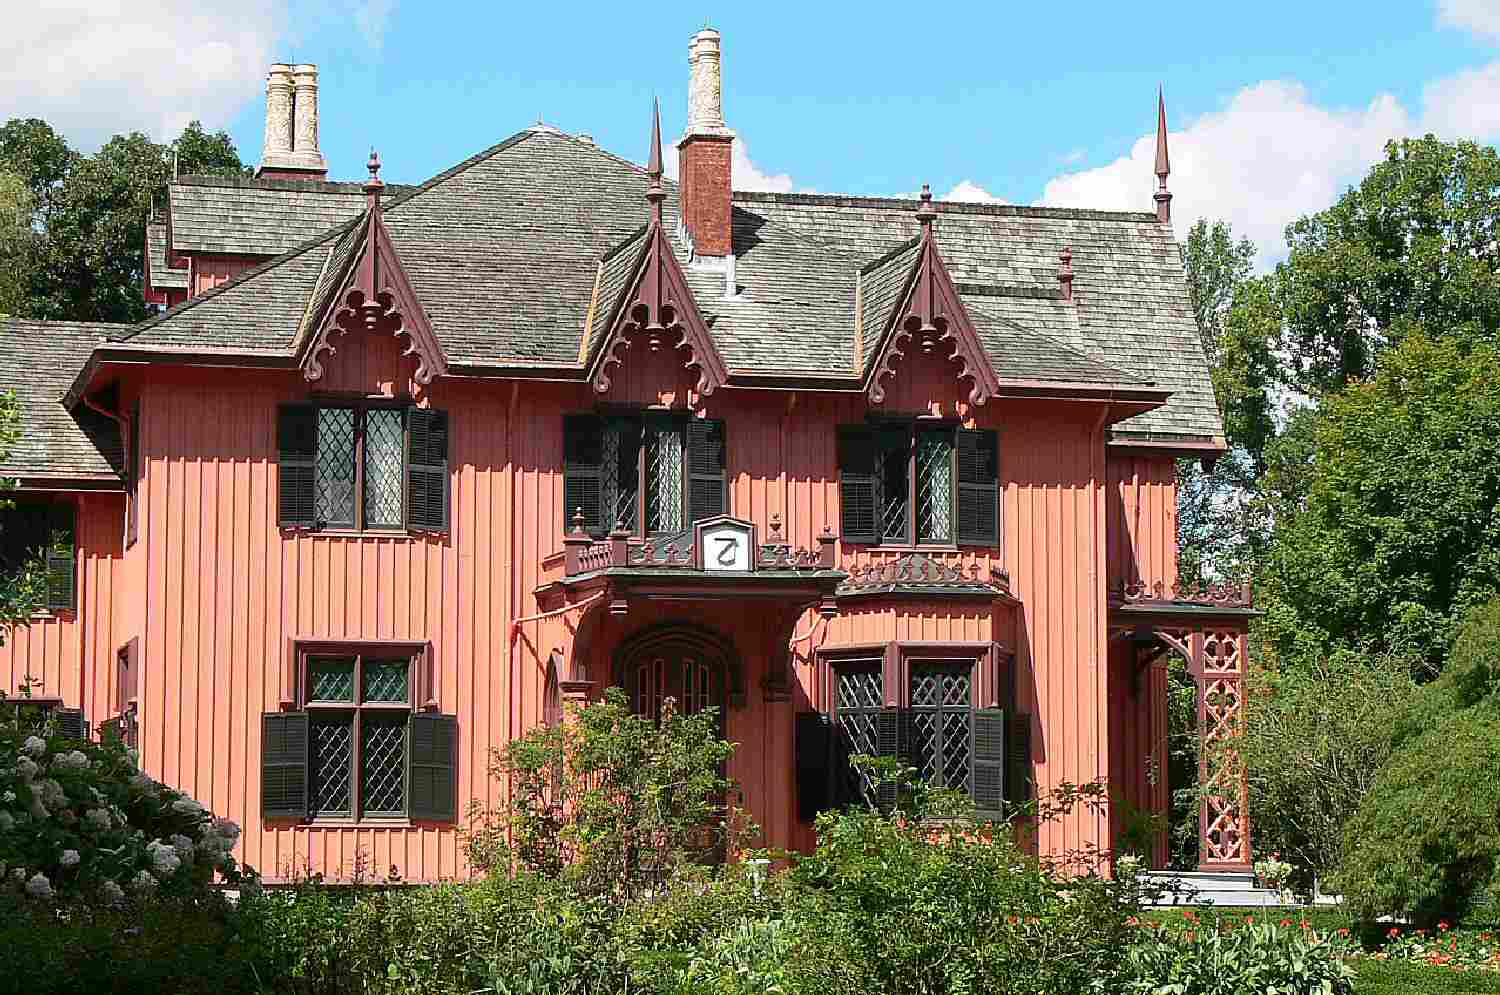 The pinkish Gothic Revival Roseland Cottage in Woodstock, Connecticut